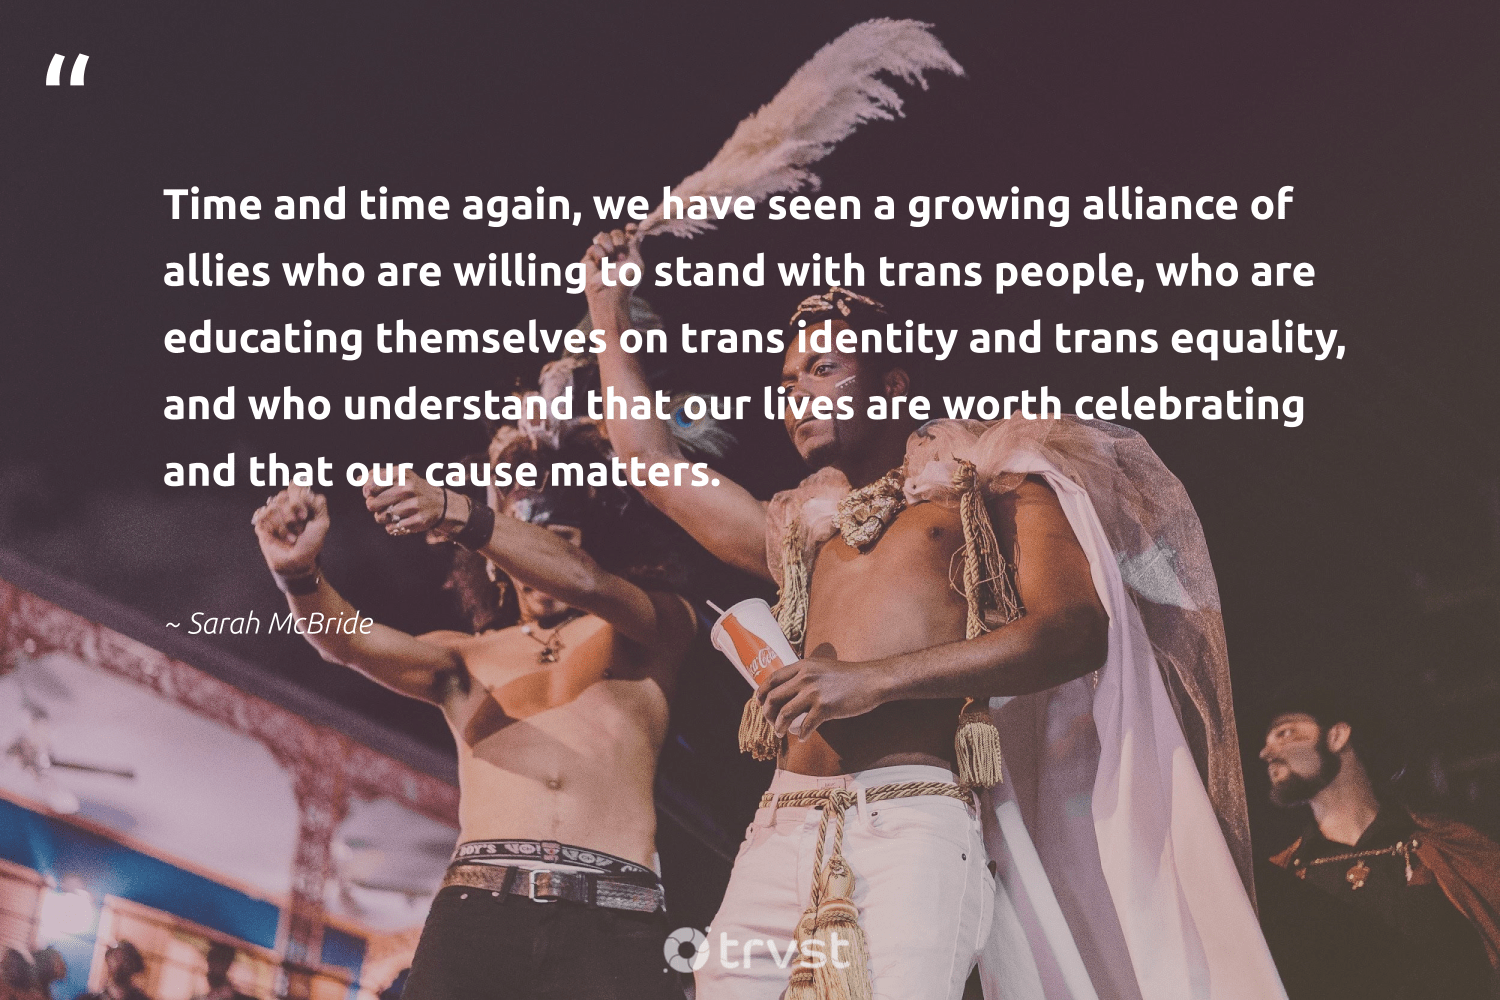 """Time and time again, we have seen a growing alliance of allies who are willing to stand with trans people, who are educating themselves on trans identity and trans equality, and who understand that our lives are worth celebrating and that our cause matters.""  - Sarah McBride #trvst #quotes #equality #cause #empowerment #bethechange #socialgood #gogreen #standup #socialchange #weareallone #socialimpact"